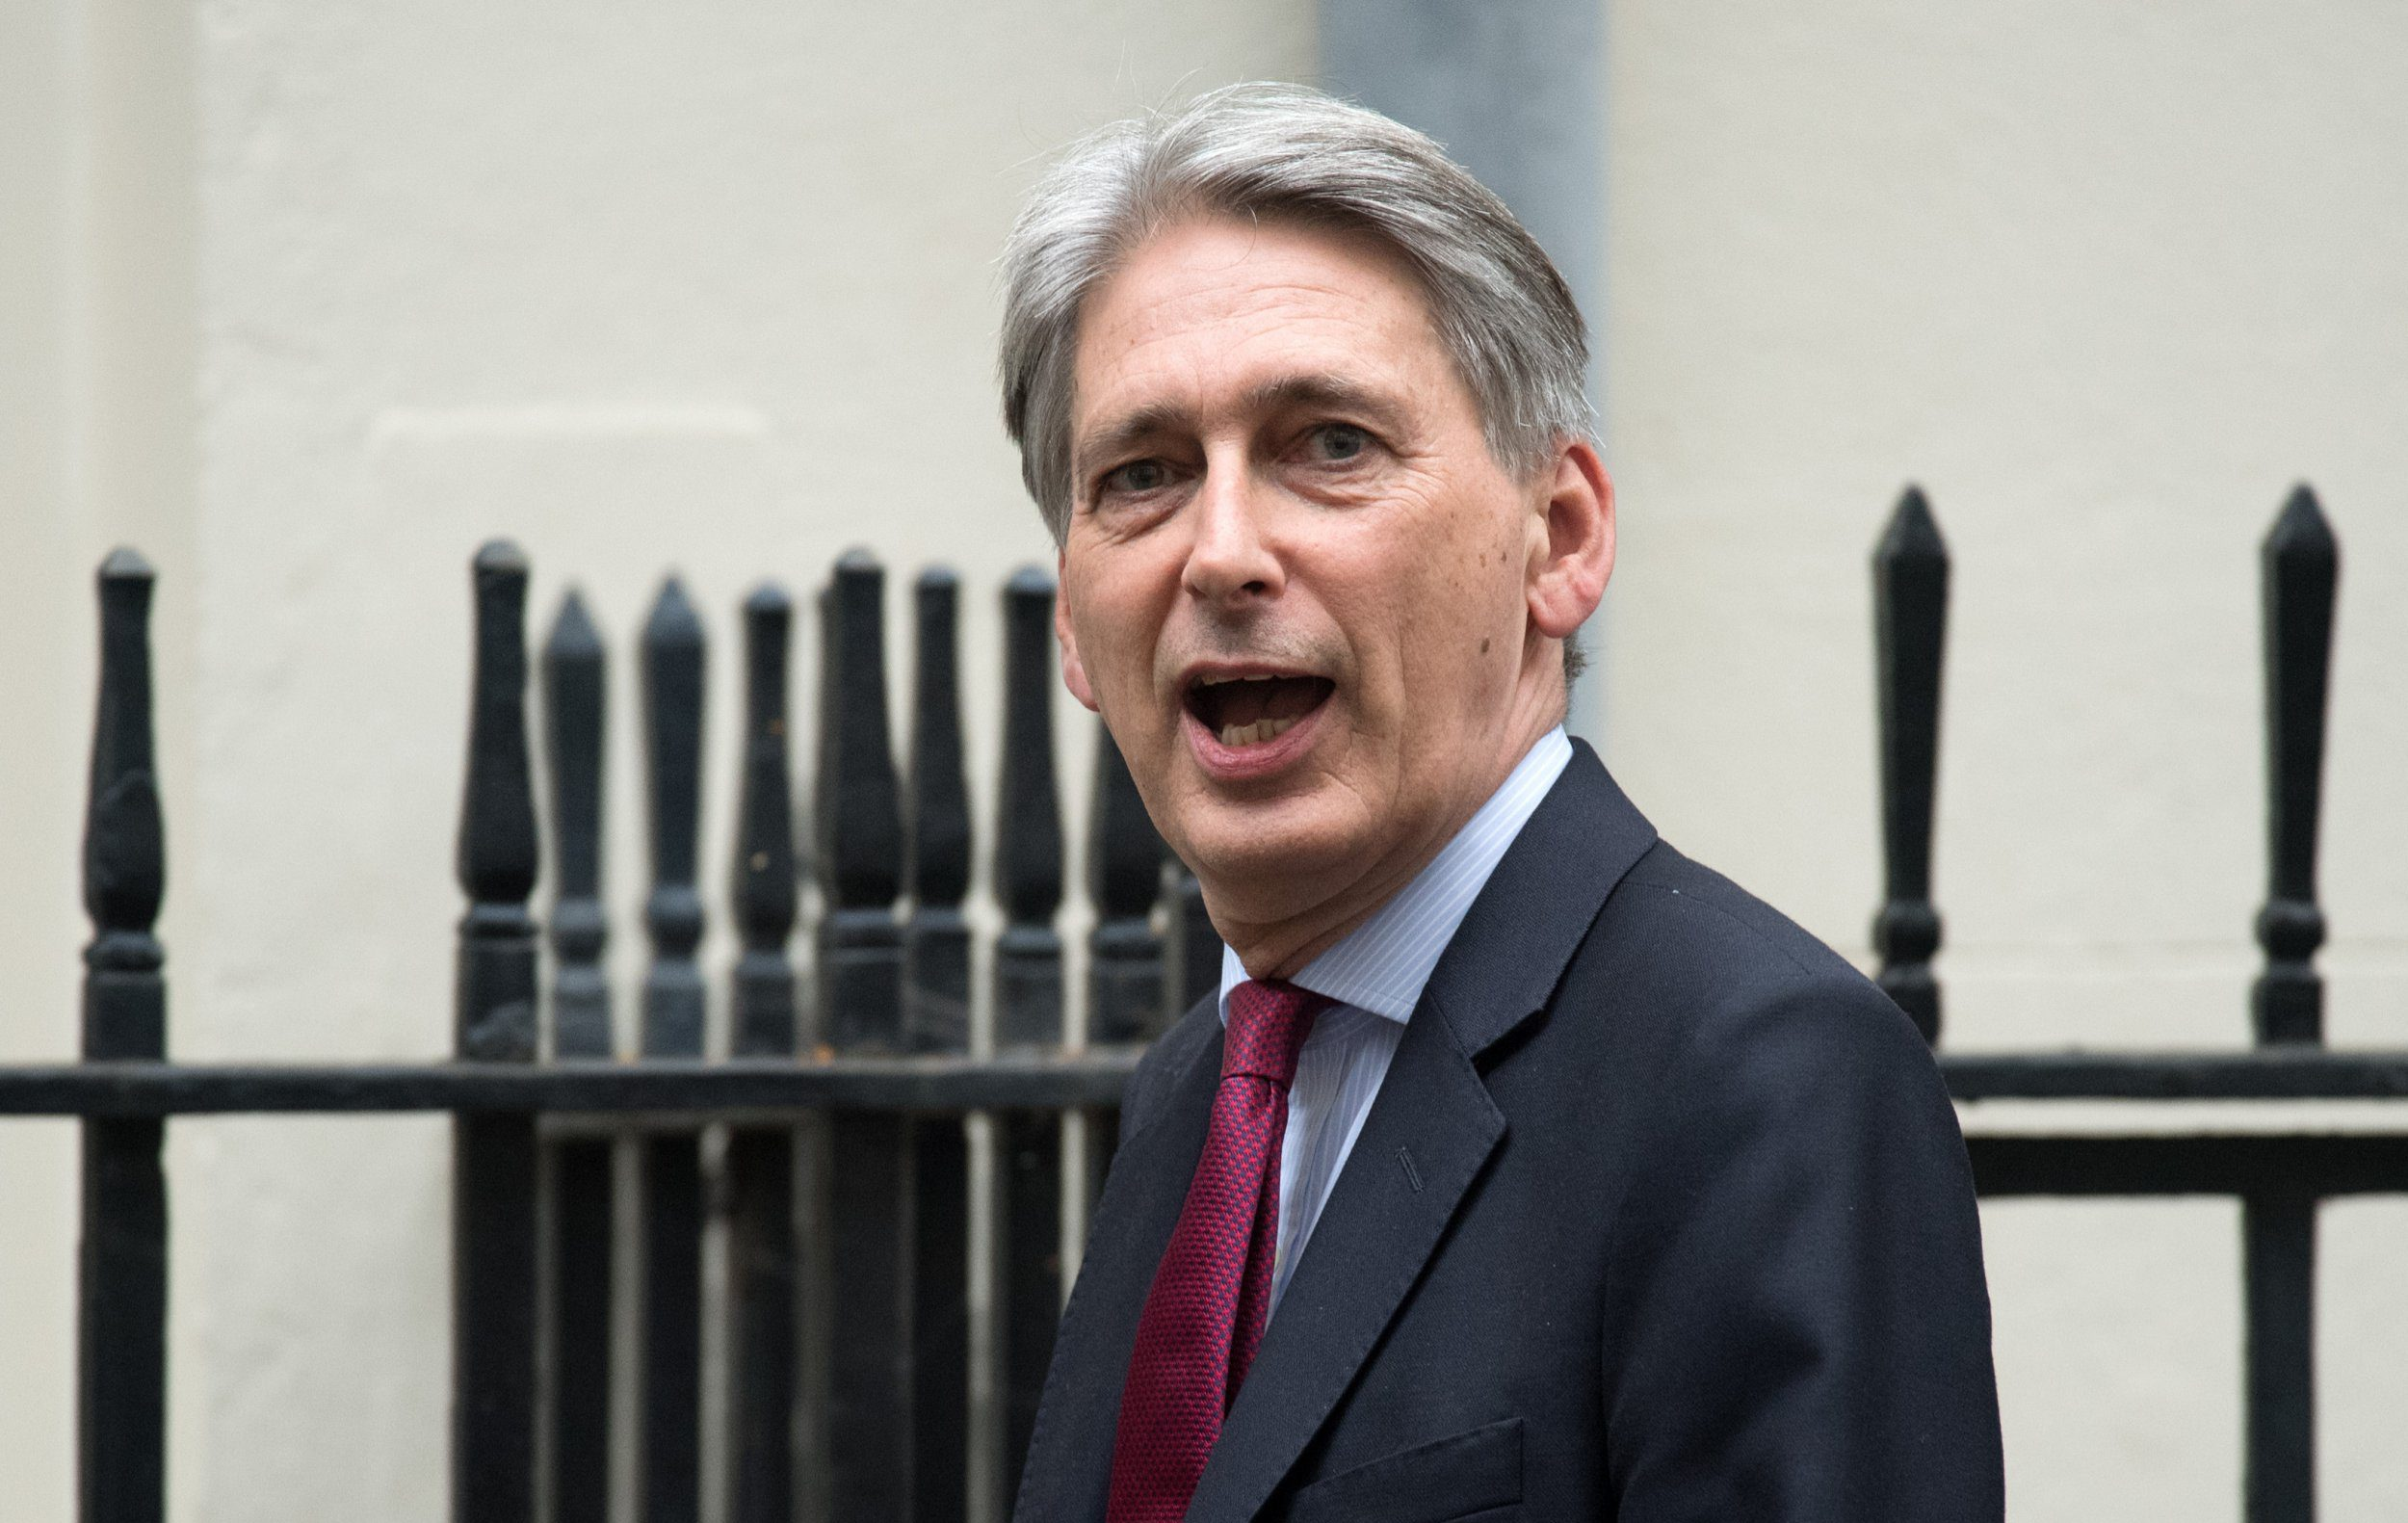 When is the budget 2017 and who is Chancellor Philip Hammond?